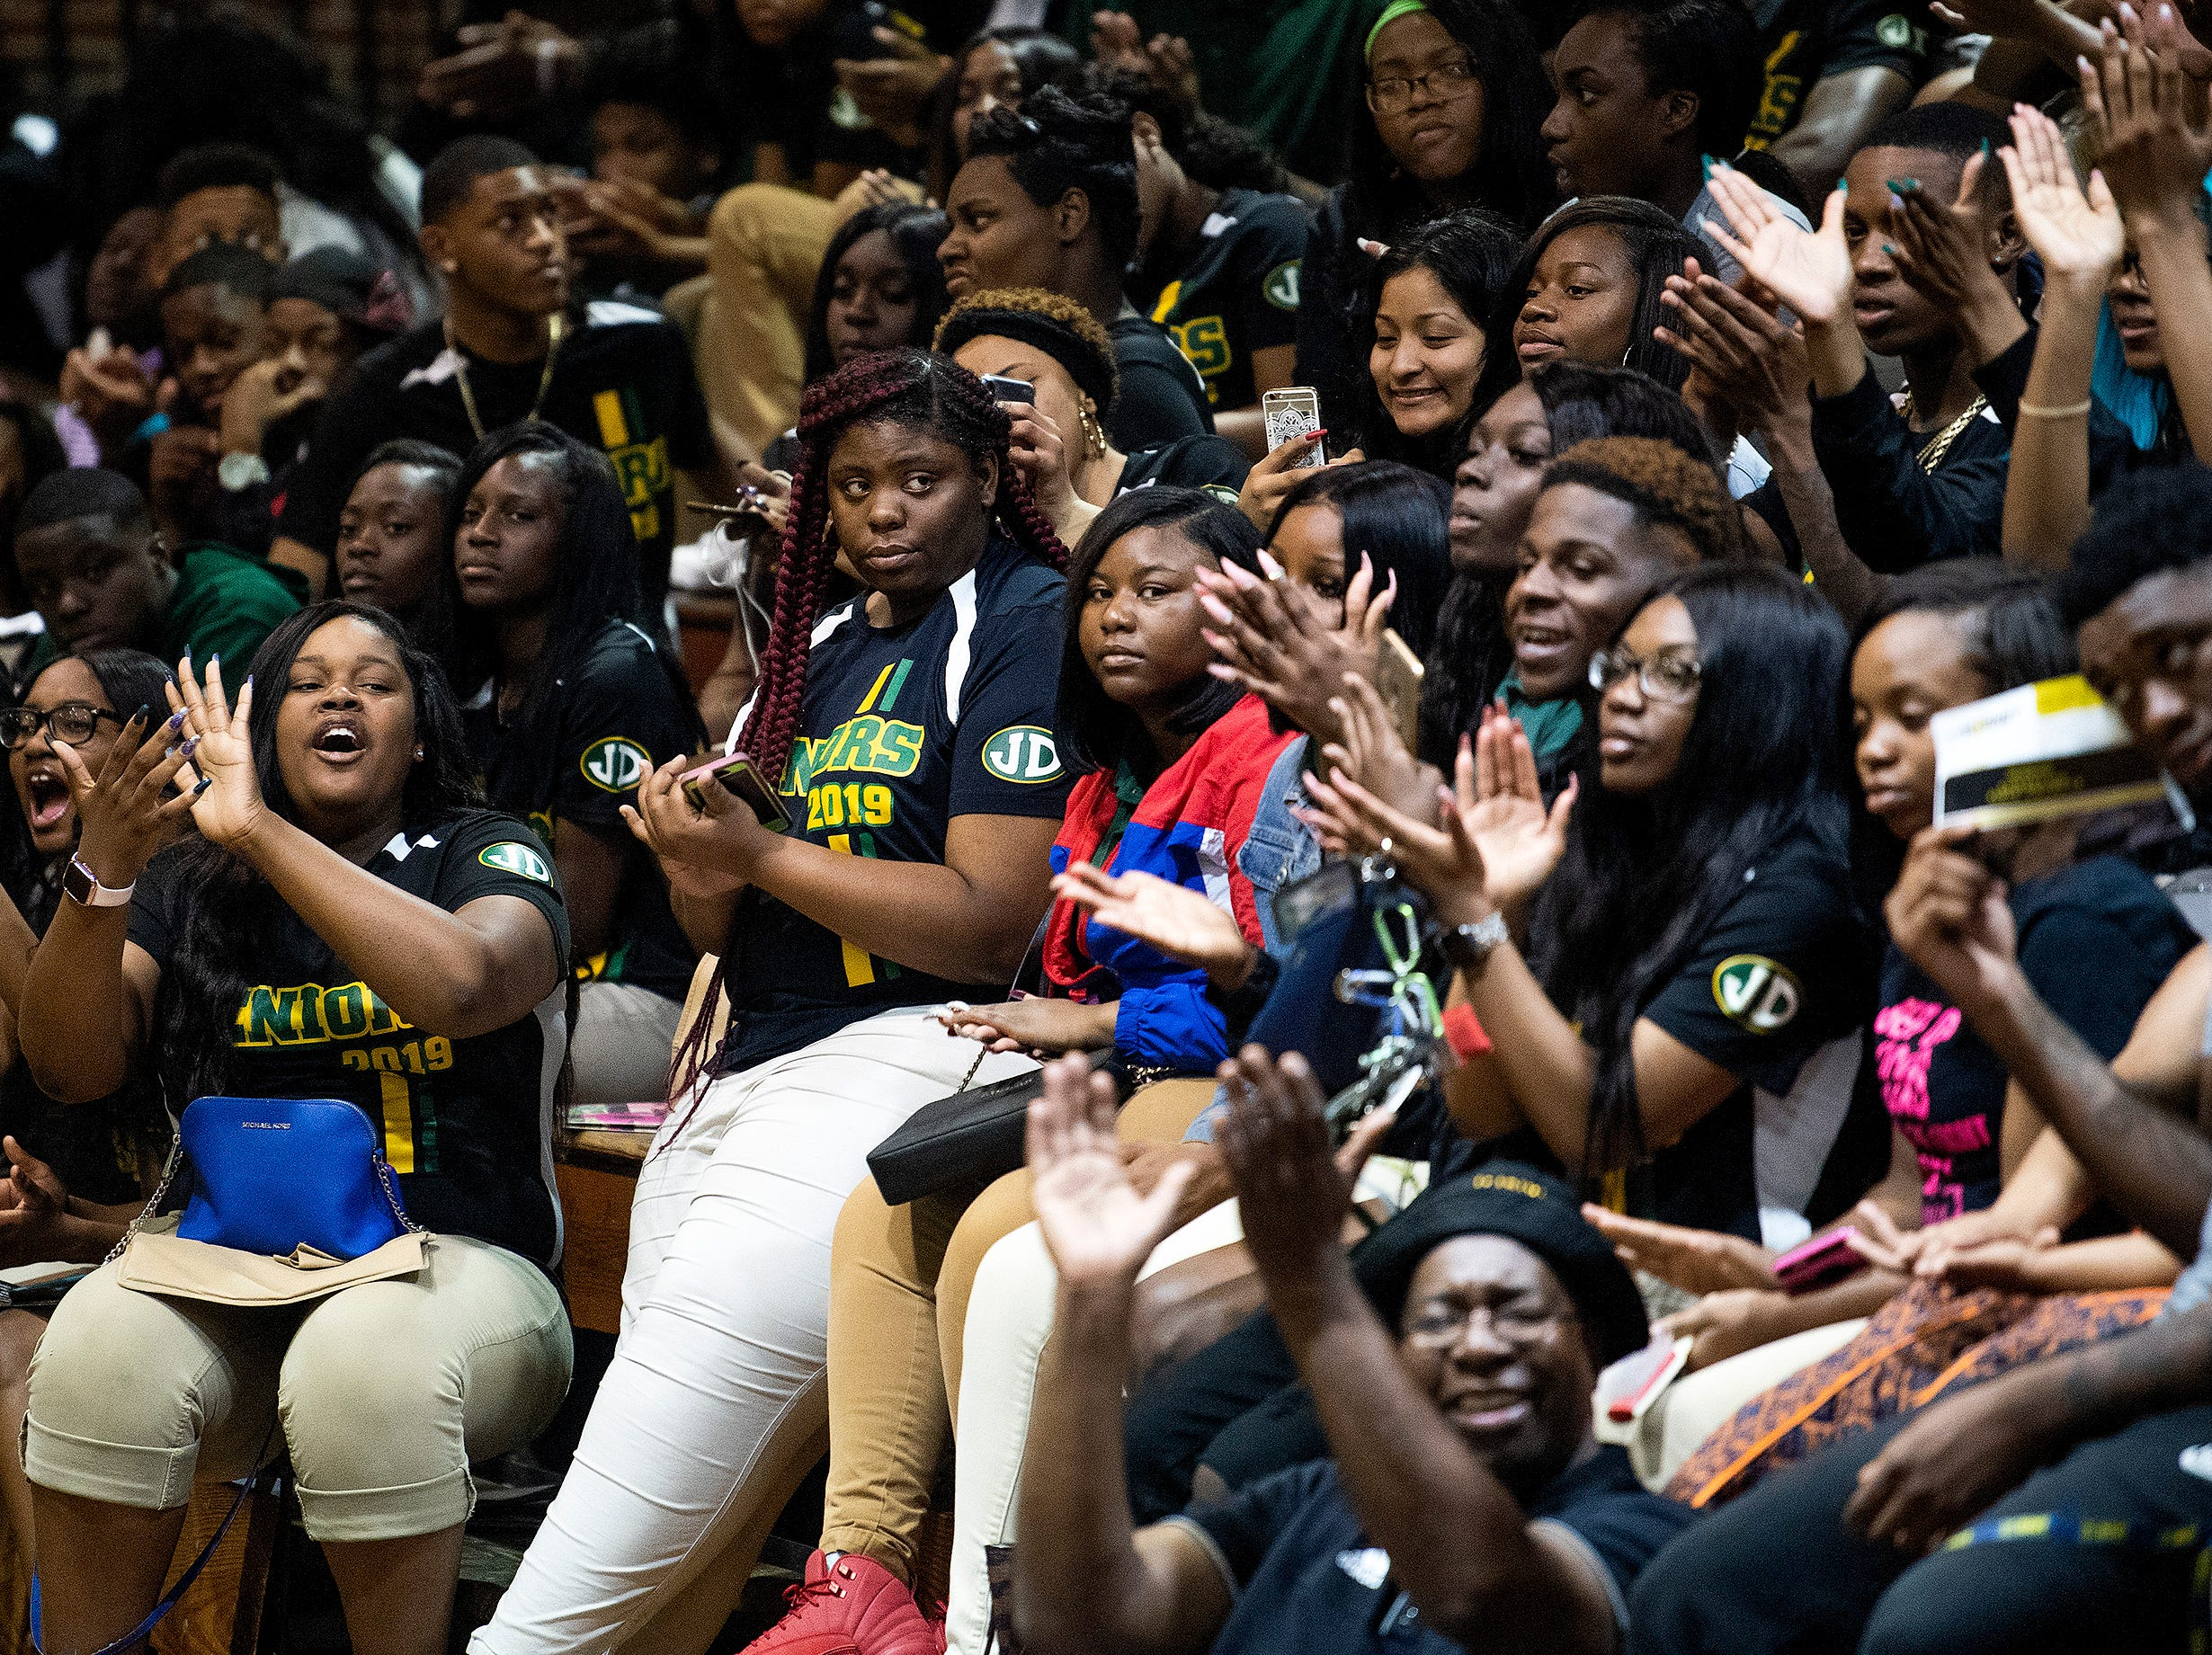 Jeff Davis High School students clap during performances by Alabama State University students during the ASU President's Tour stop at Jeff Davis High School in Montgomery, Ala., on Friday April 12, 2019.